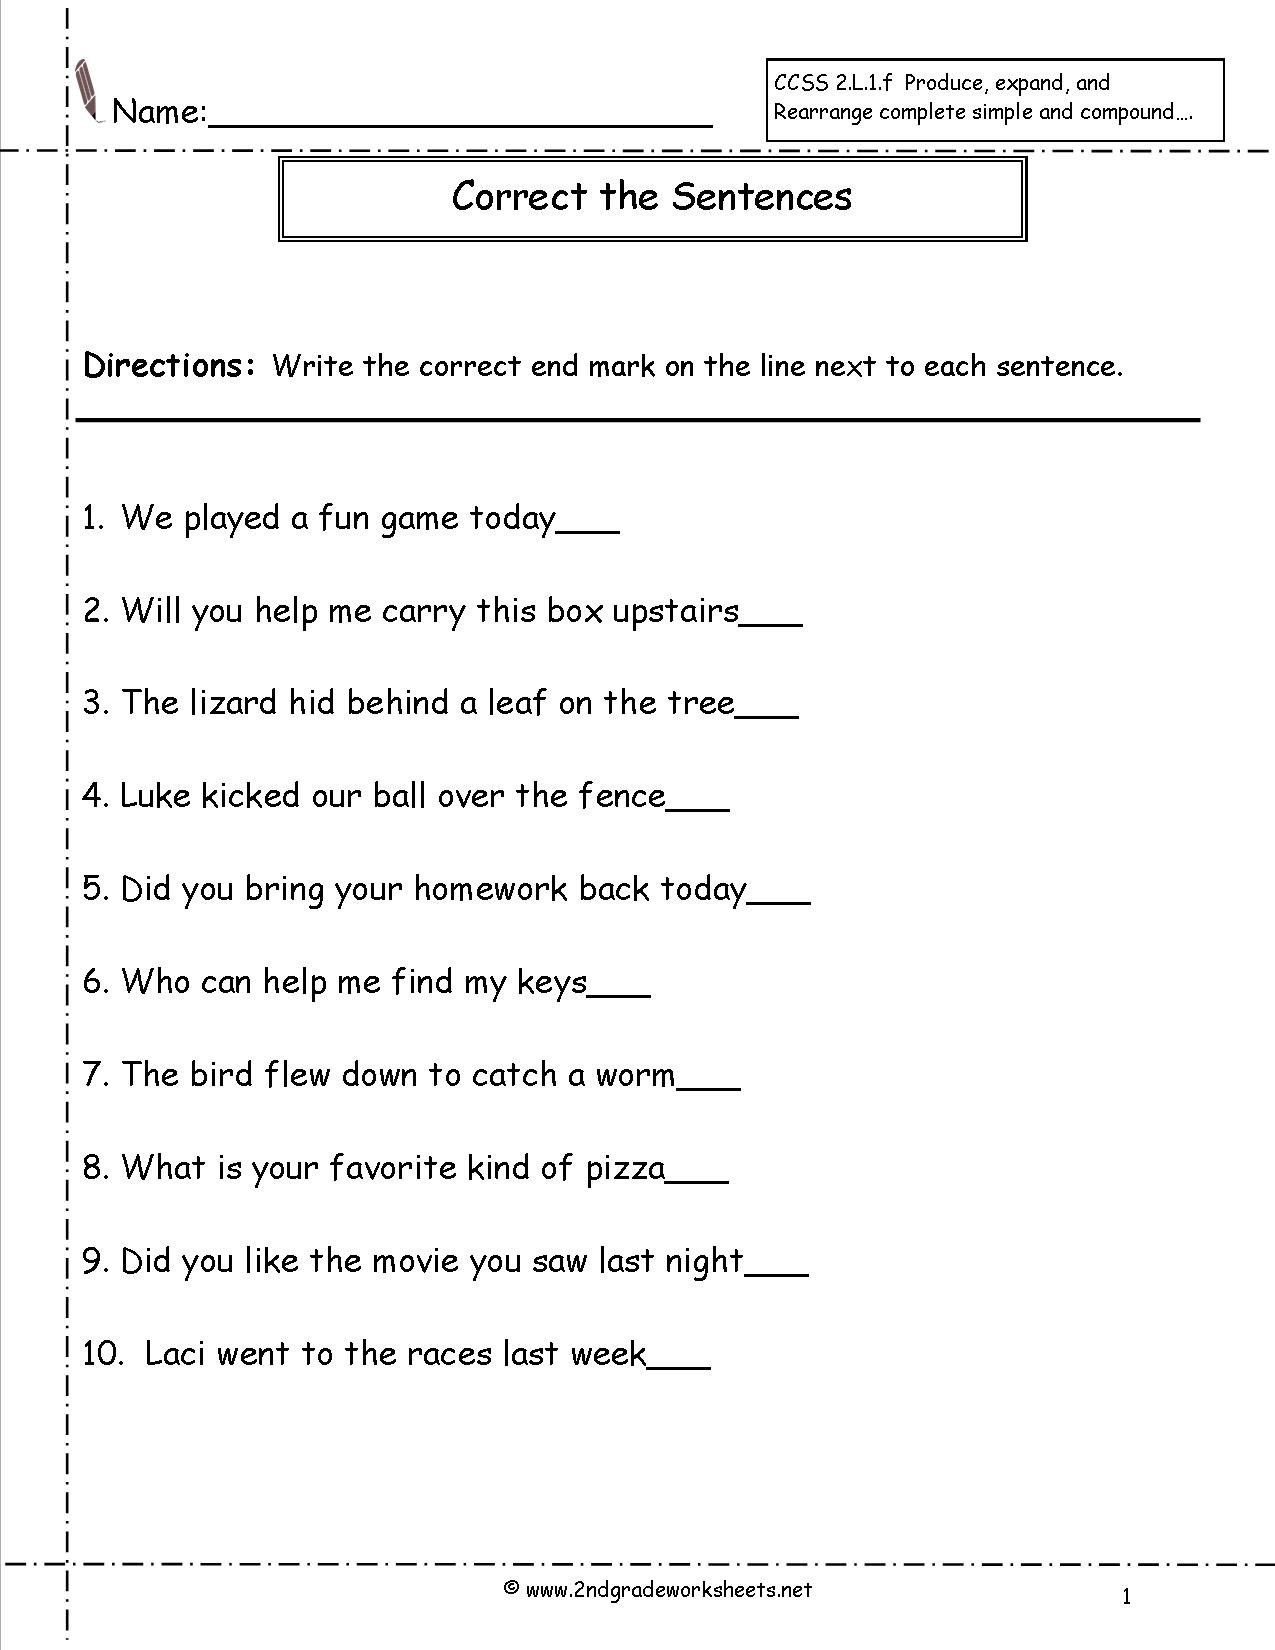 16 Best Images Of 5th Grade Punctuation Worksheets